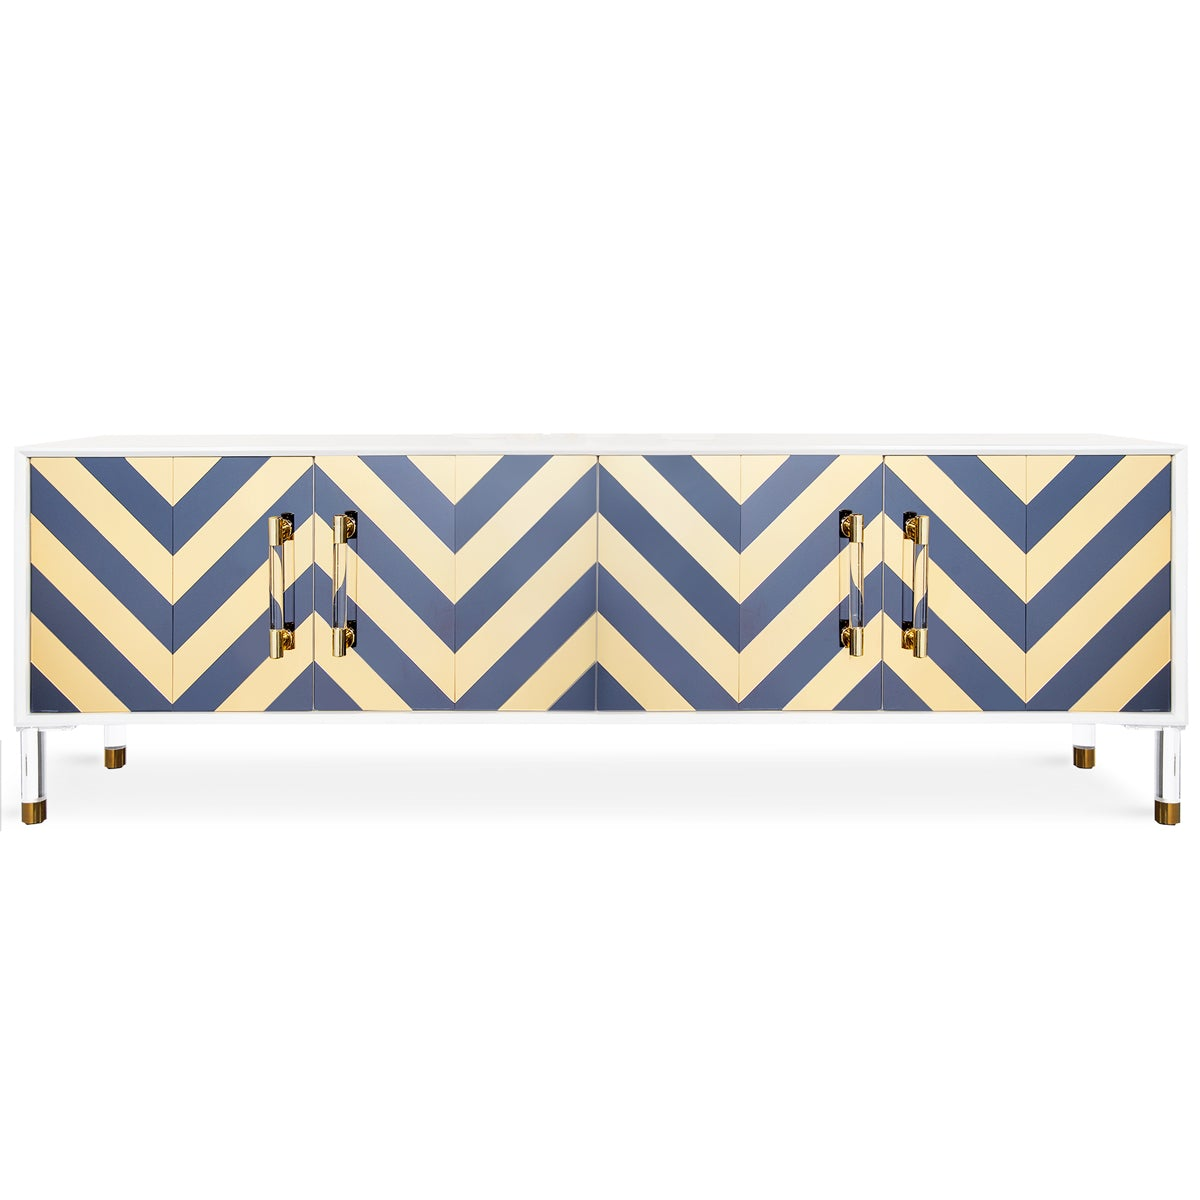 Four-door credenza with a gray and yellow chevron design on the front, a white top and combination acrylic and brass legs and door pulls.